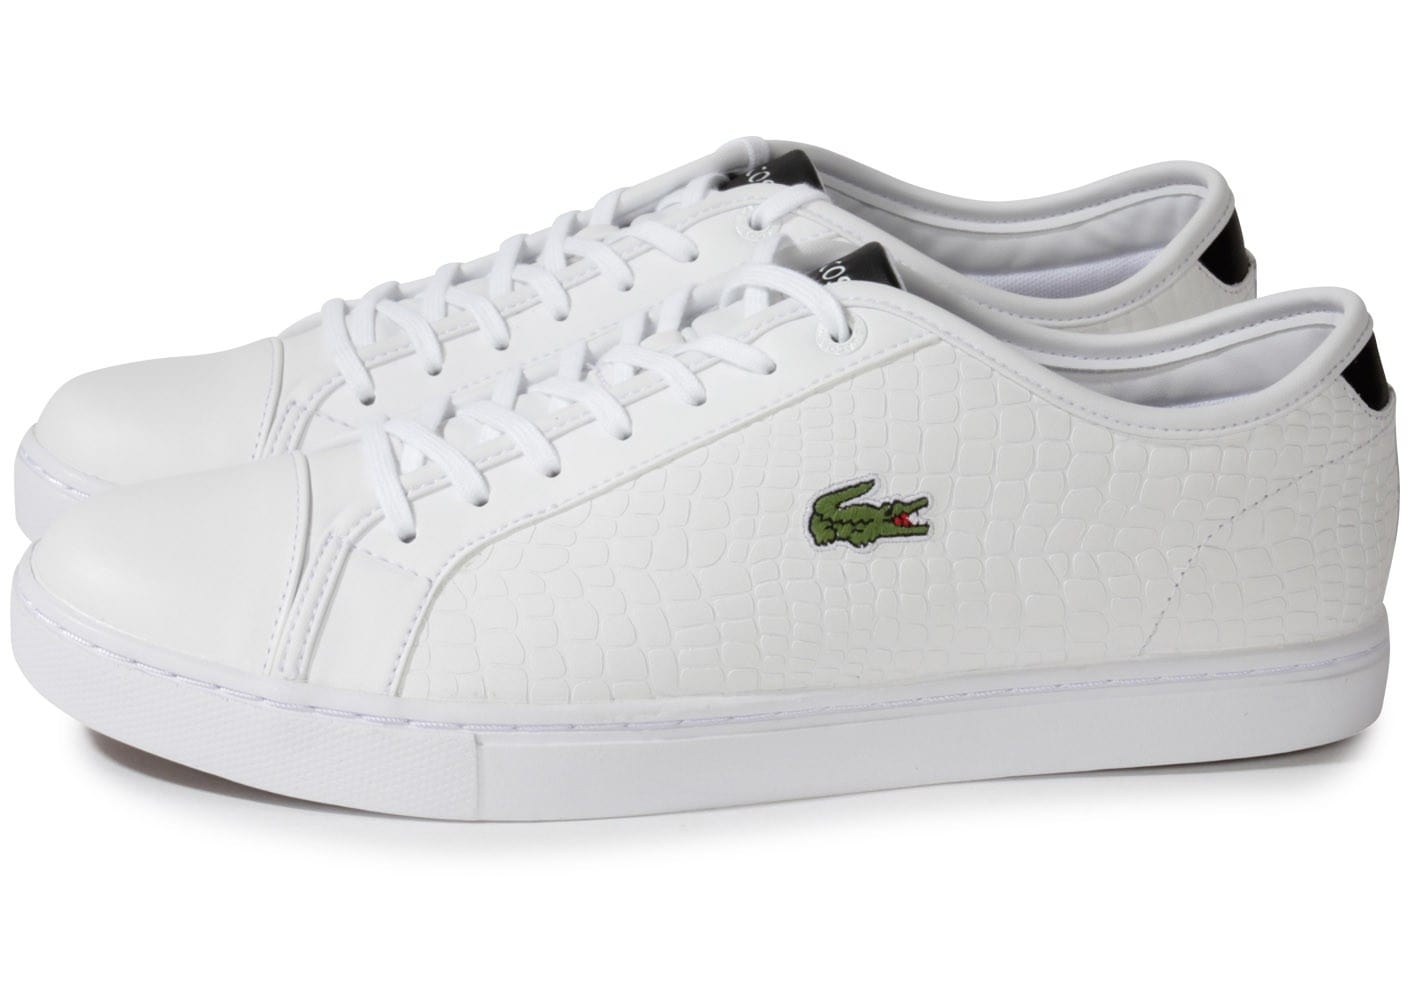 Chaussures Lacoste blanches homme VeNJxJ